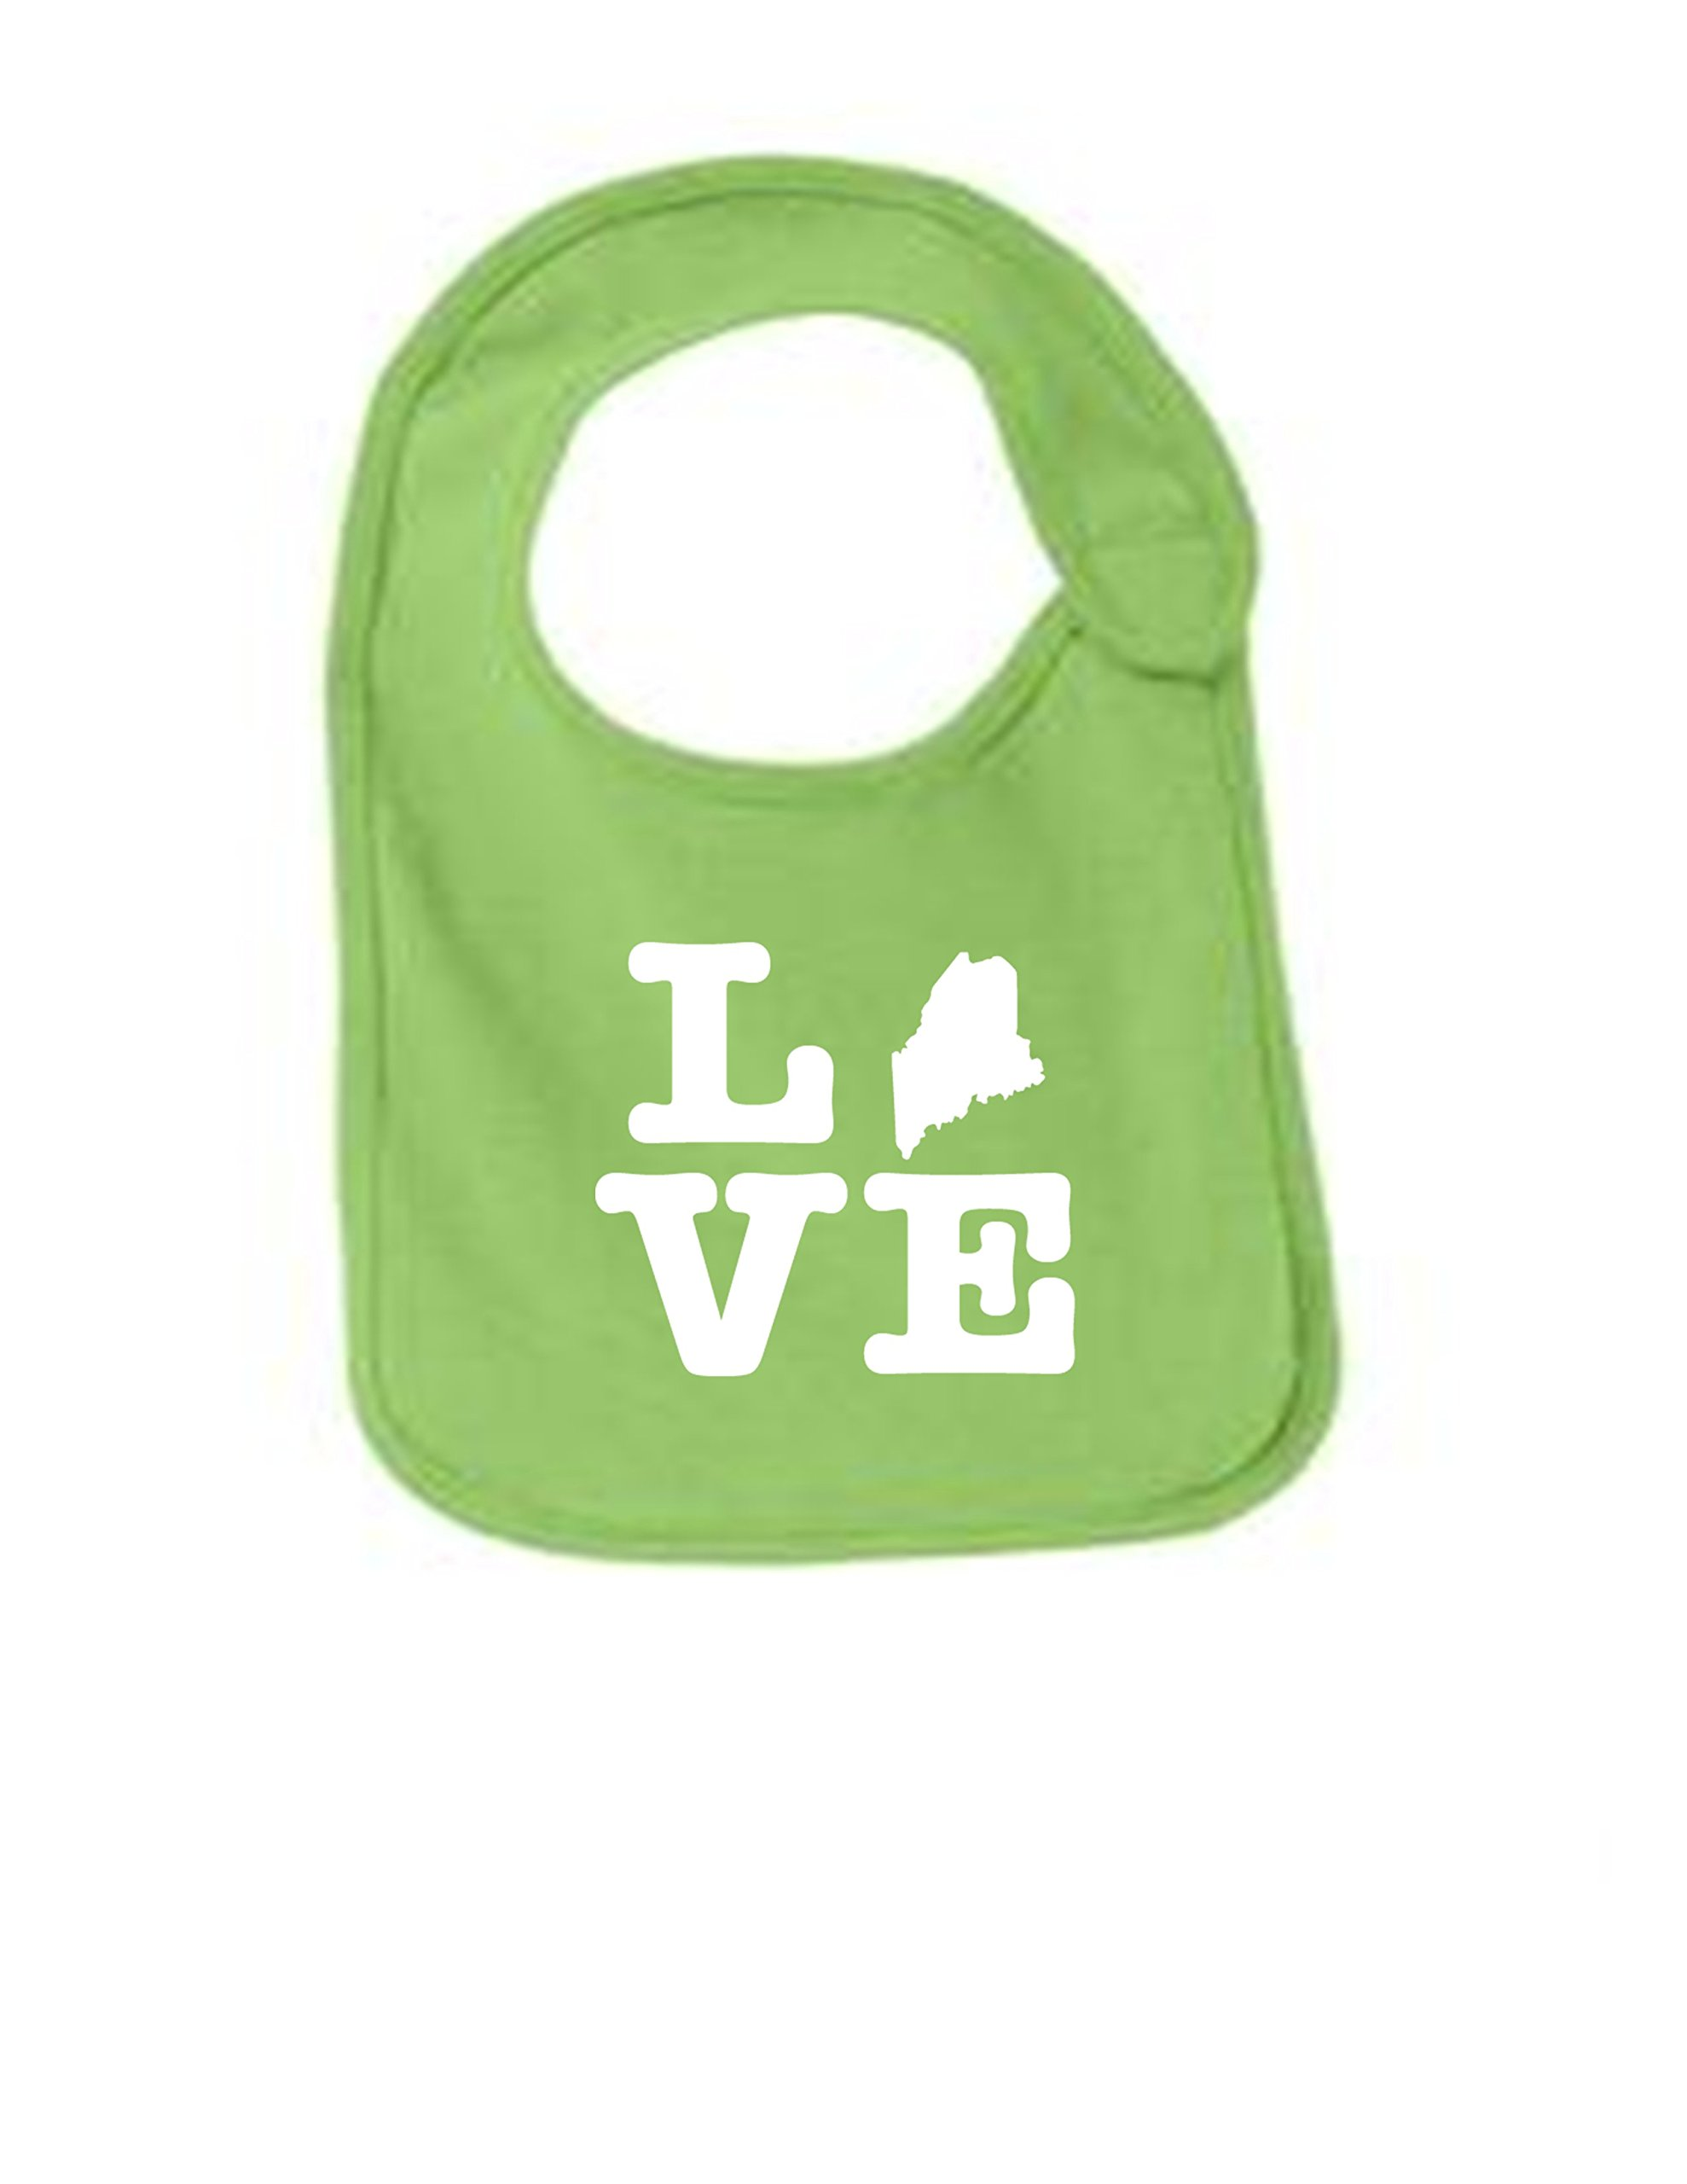 Maine Love Funny Infant Jersey Bib Lime One Size by Sod Uniforms (Image #1)